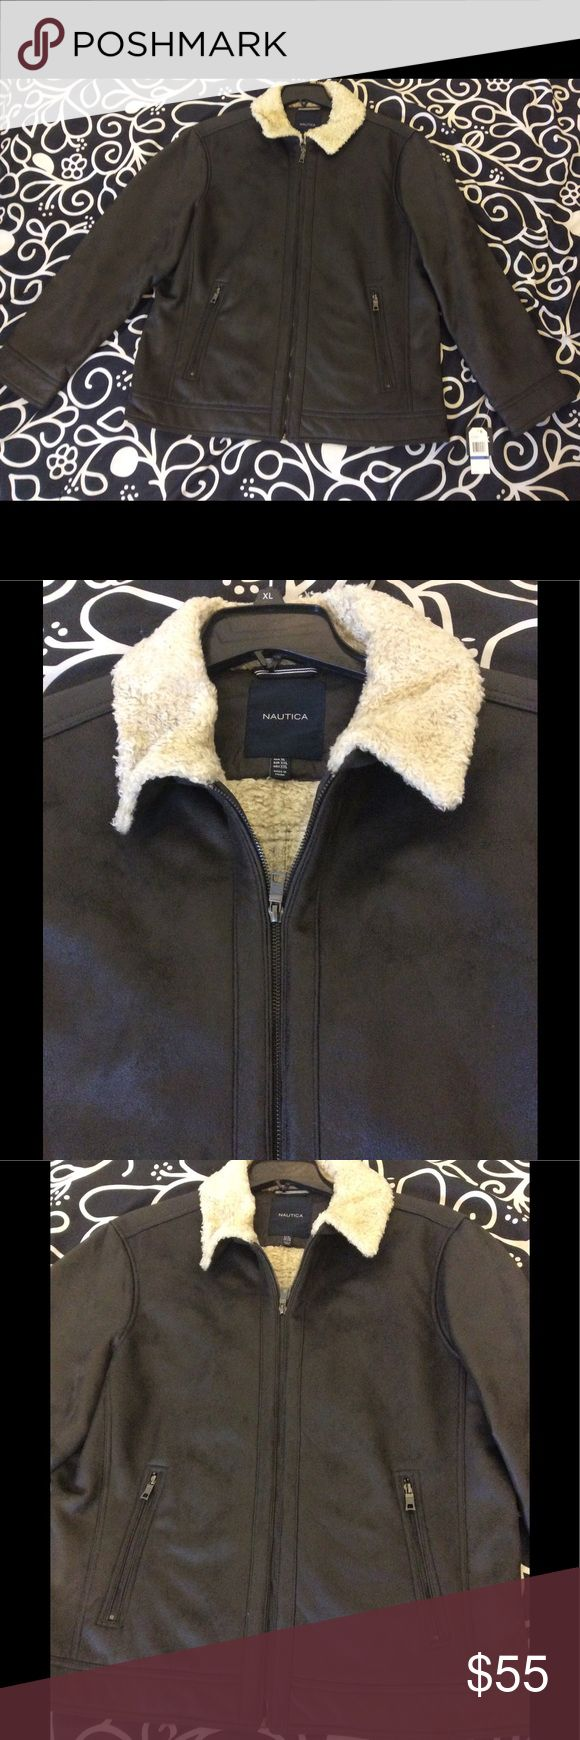 Nautica Men's Faux Leather Jacket w/ Faux Fur This faux leather jacket(100% polyester) looks amazing and is cruelty free. Adding a masculine sophistication to the male form, this jacket is bound to turn heads and garner compliments. Nautica Jackets & Coats